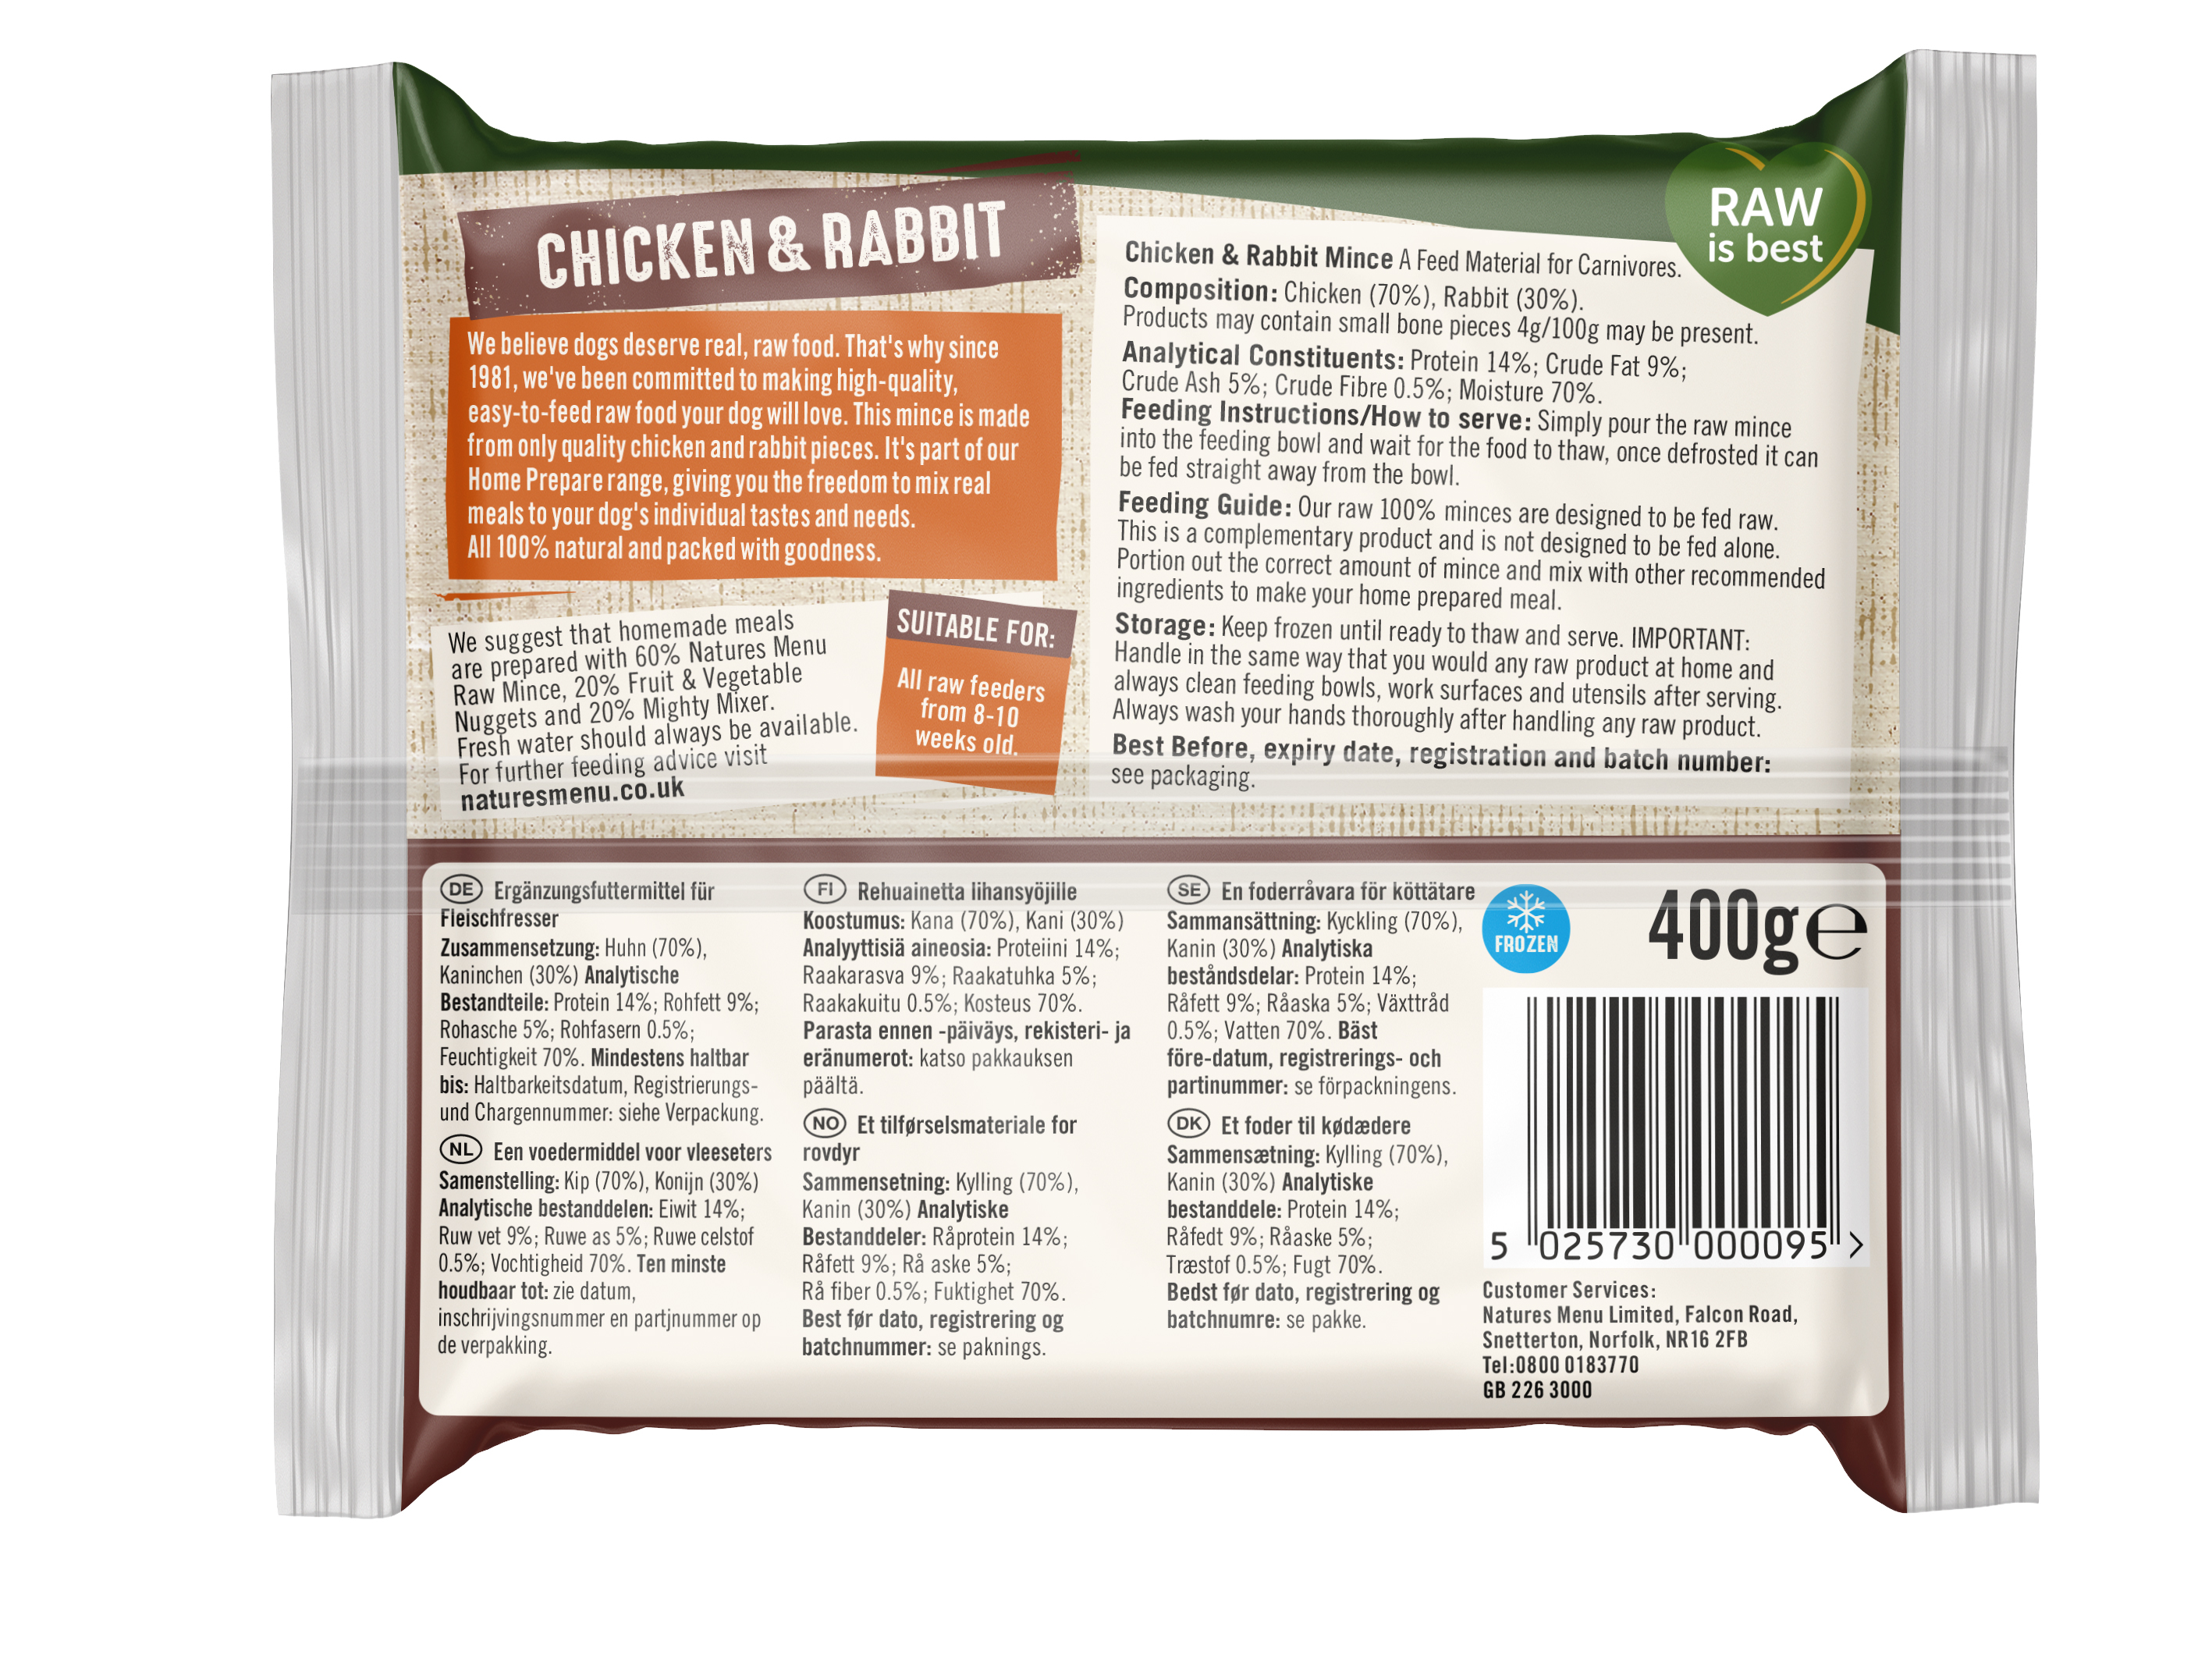 Nature's Menu 400g Frozen Minces Chicken & Rabbit